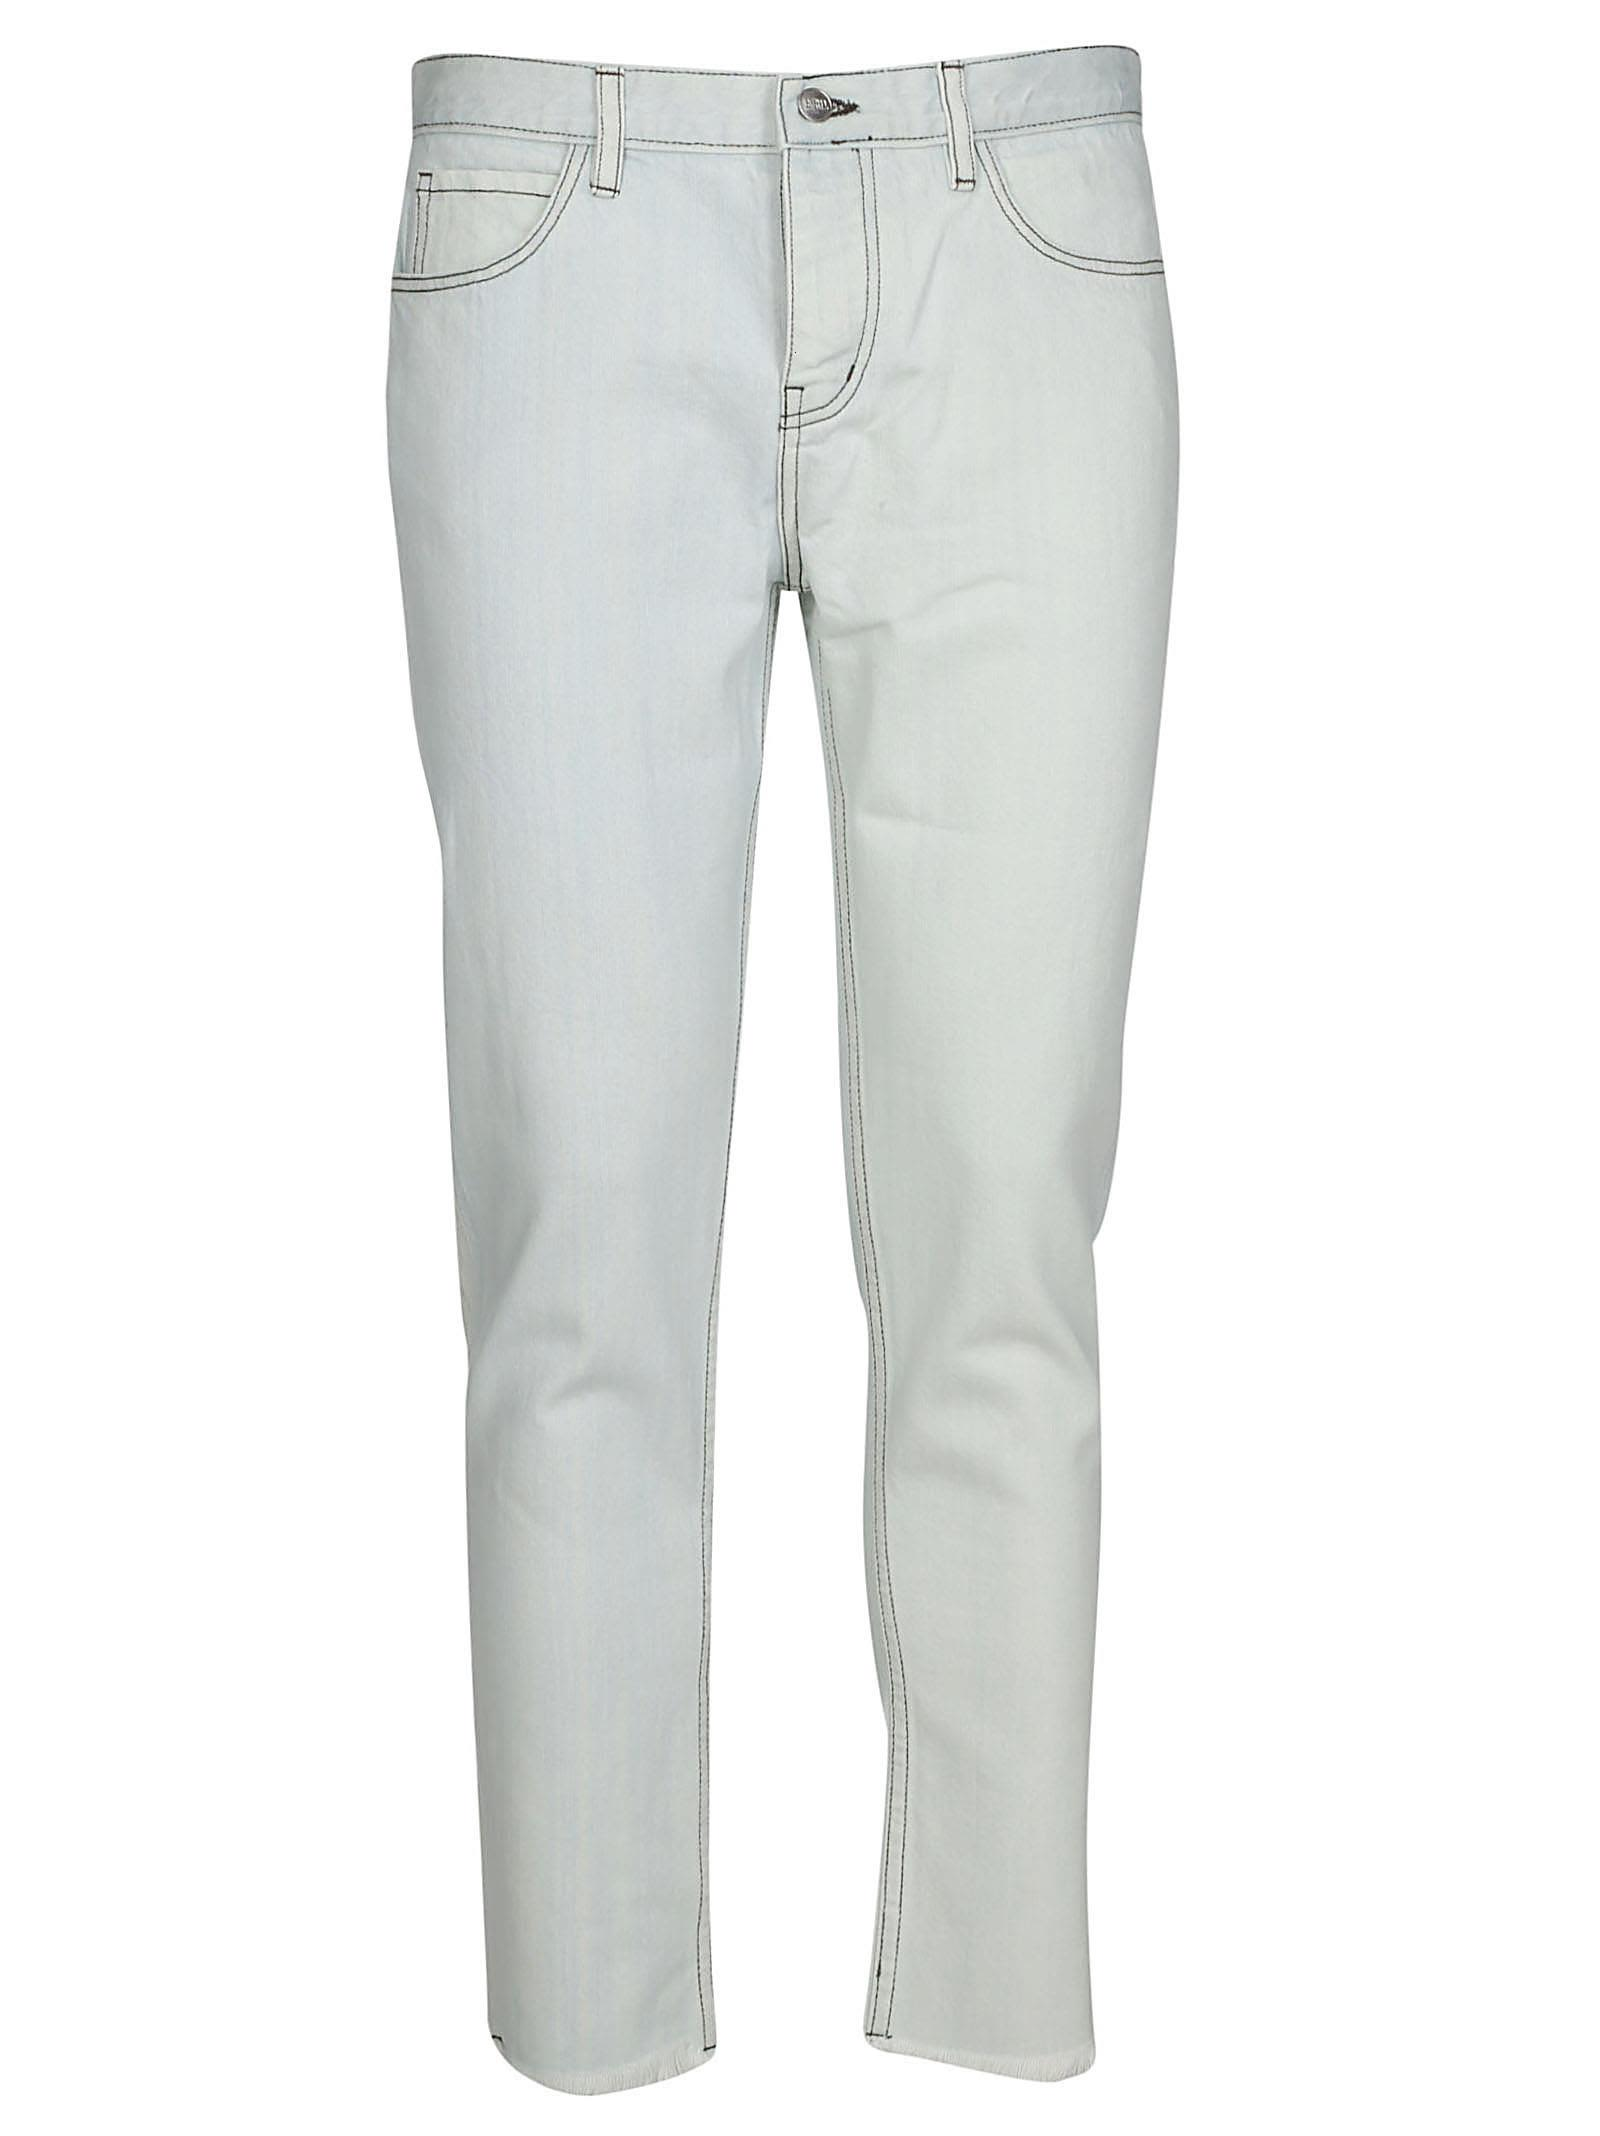 ENFANT RICHE DÉPRIMÉ Enfants Riches Déprimés Classic Jeans in White